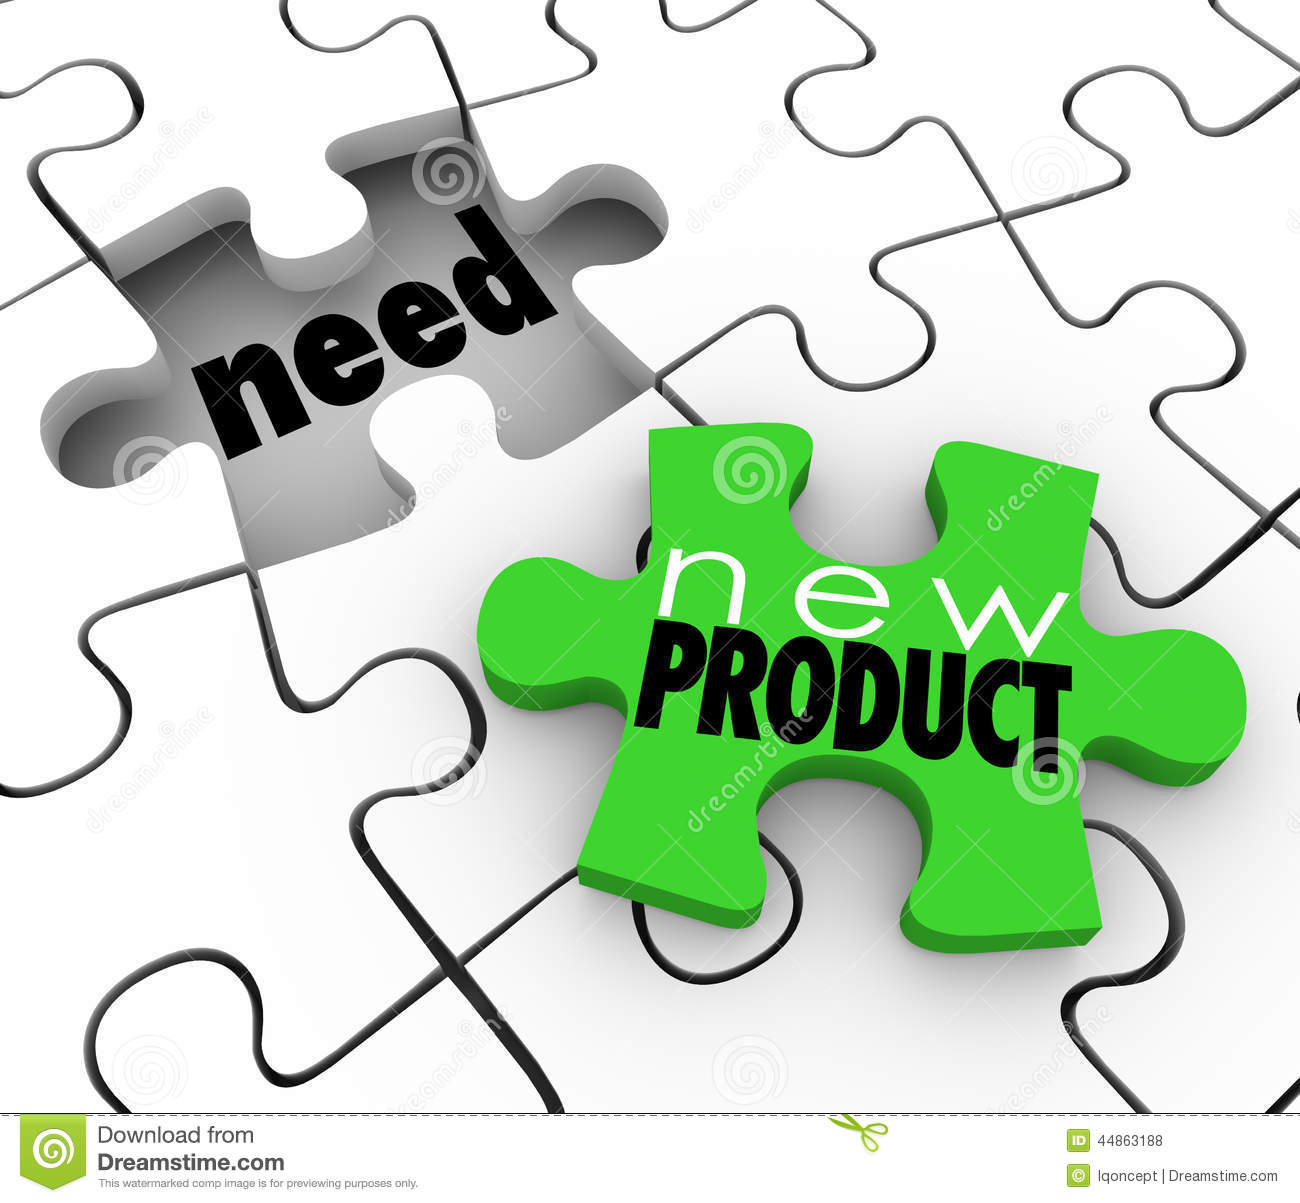 new product filling need business service sell customers